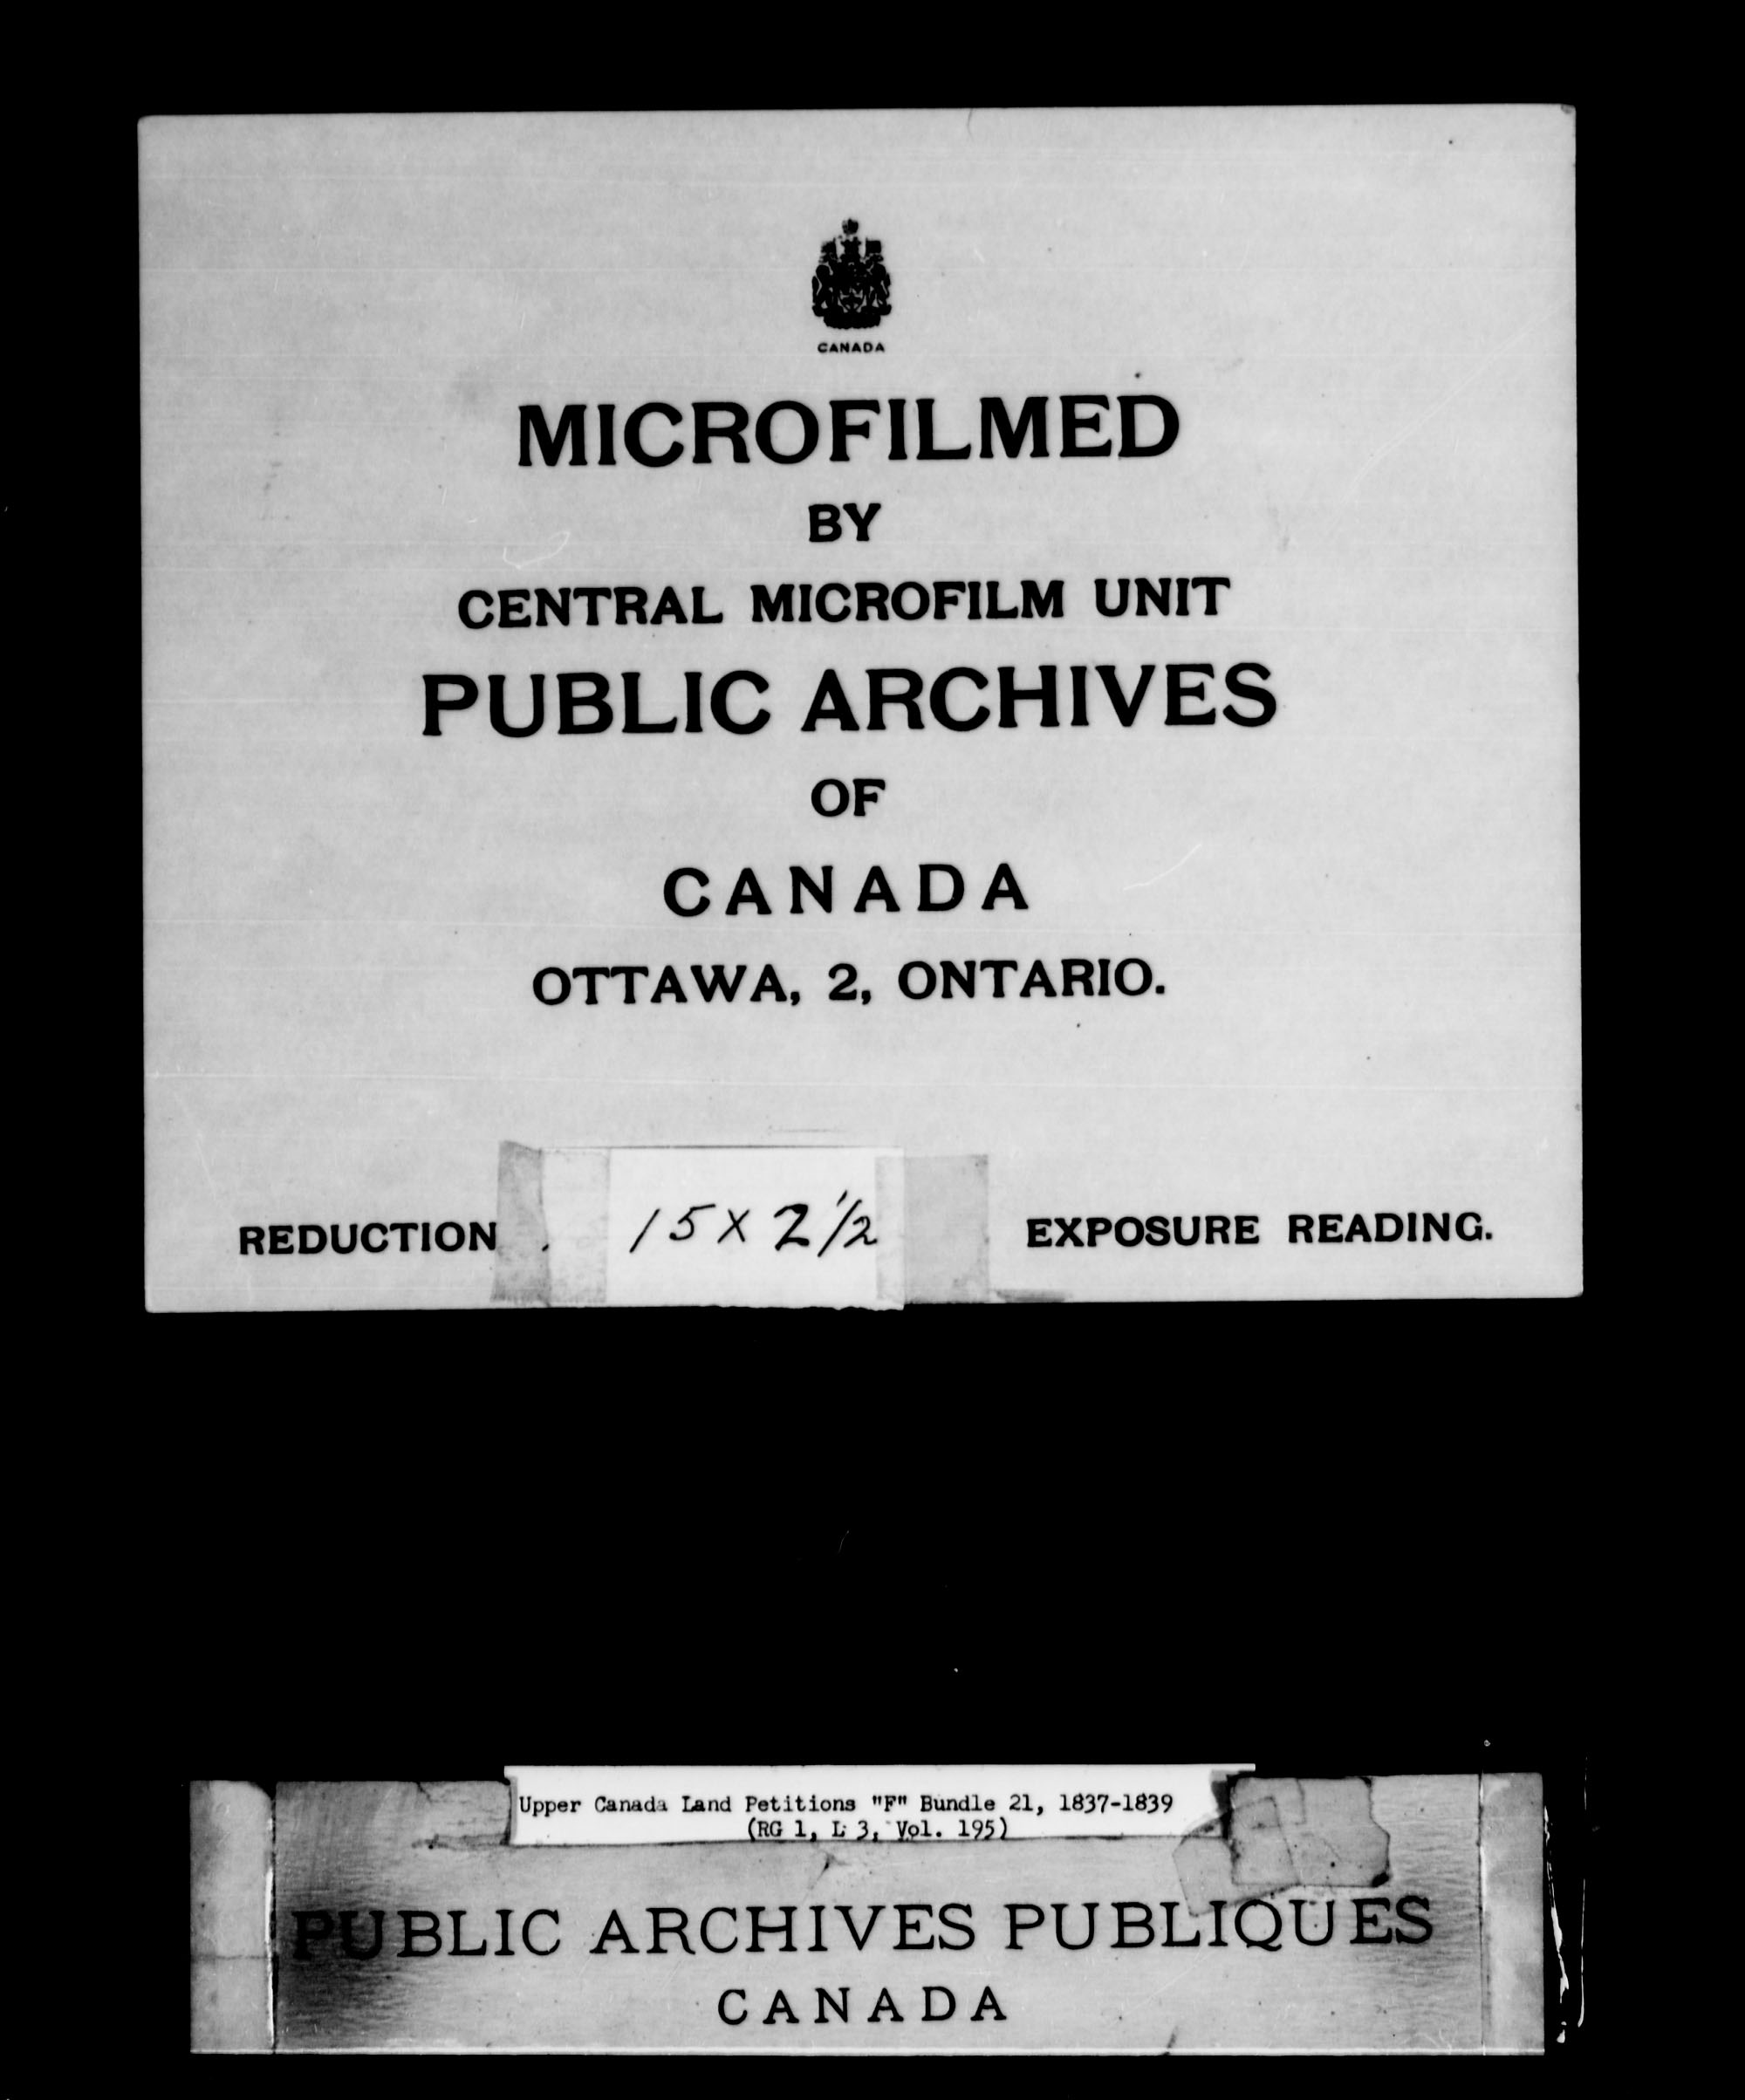 Title: Upper Canada Land Petitions (1763-1865) - Mikan Number: 205131 - Microform: c-2022